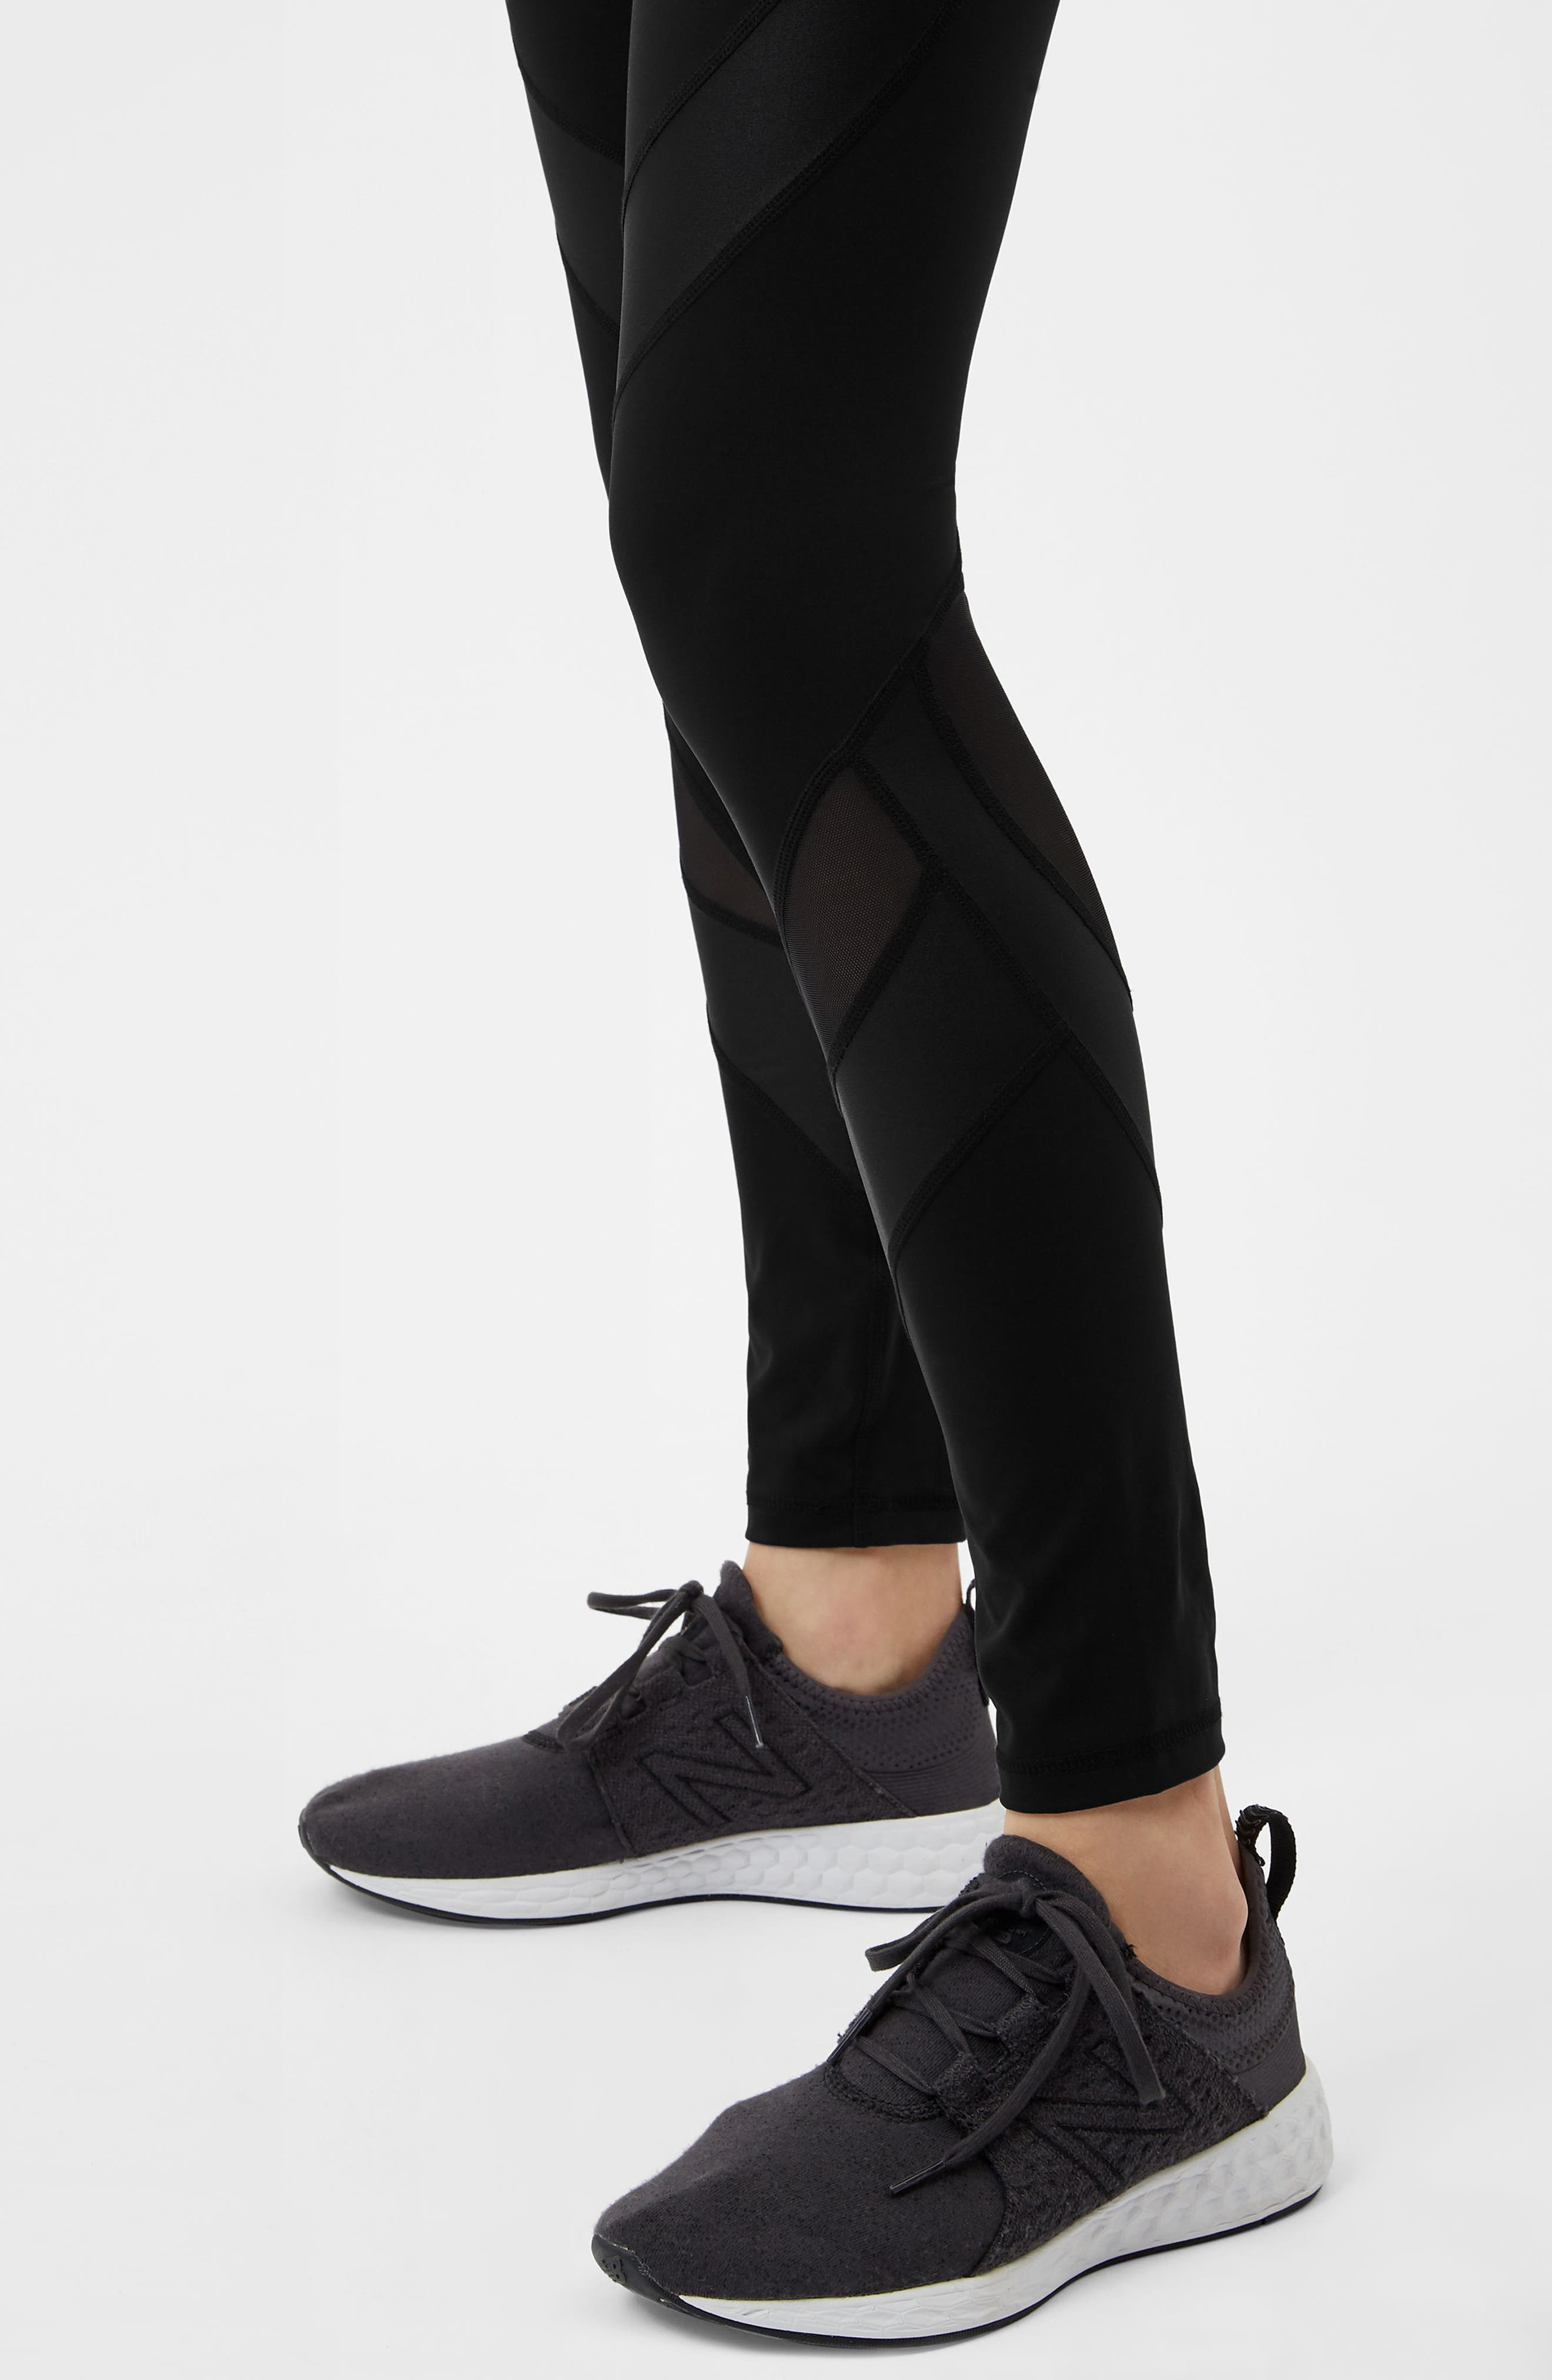 Wetlook Run Leggings,                             Alternate thumbnail 7, color,                             BLACK